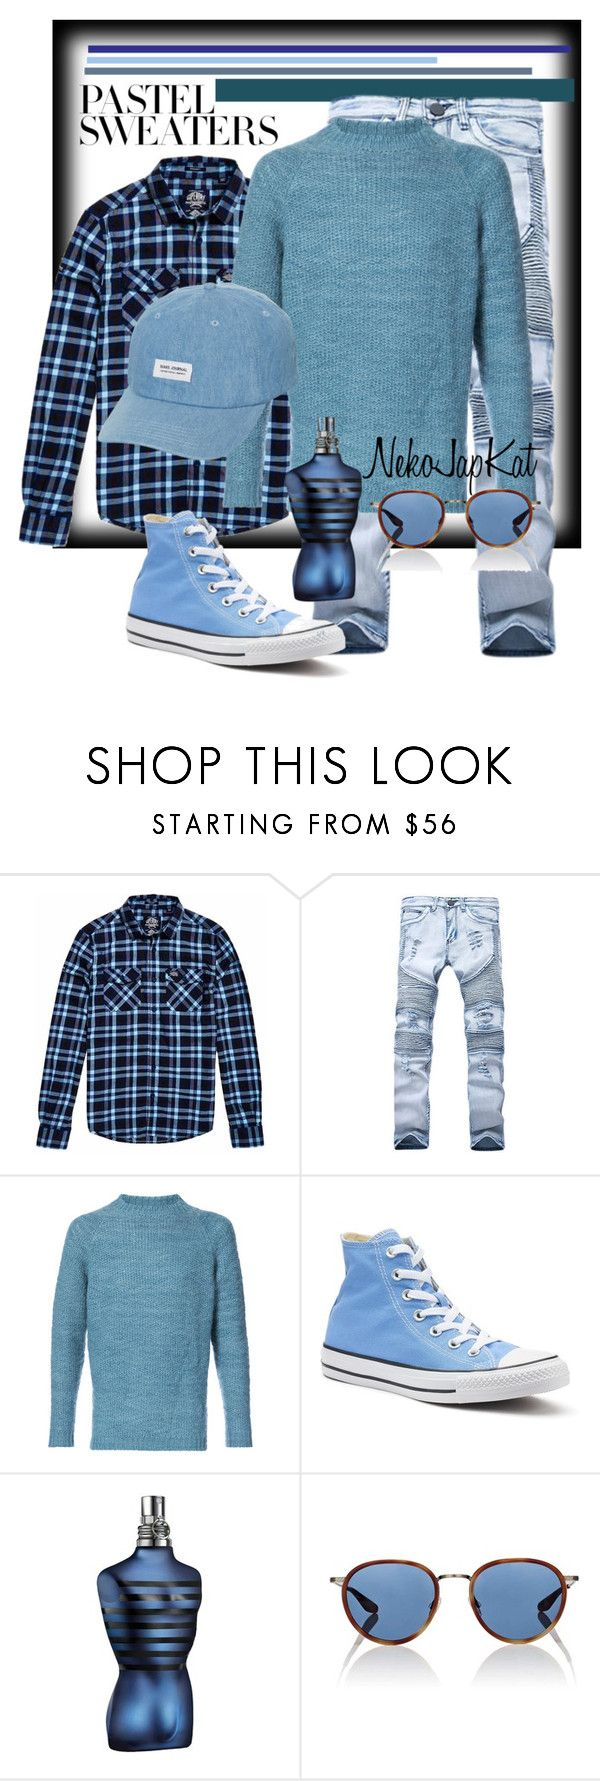 """""""men pastels"""" by neko-m-tucker-smith ❤ liked on Polyvore featuring Superdry, The Elder Statesman, Converse, John Lewis, Barton Perreira, Banks, men's fashion, menswear and pastelsweaters"""